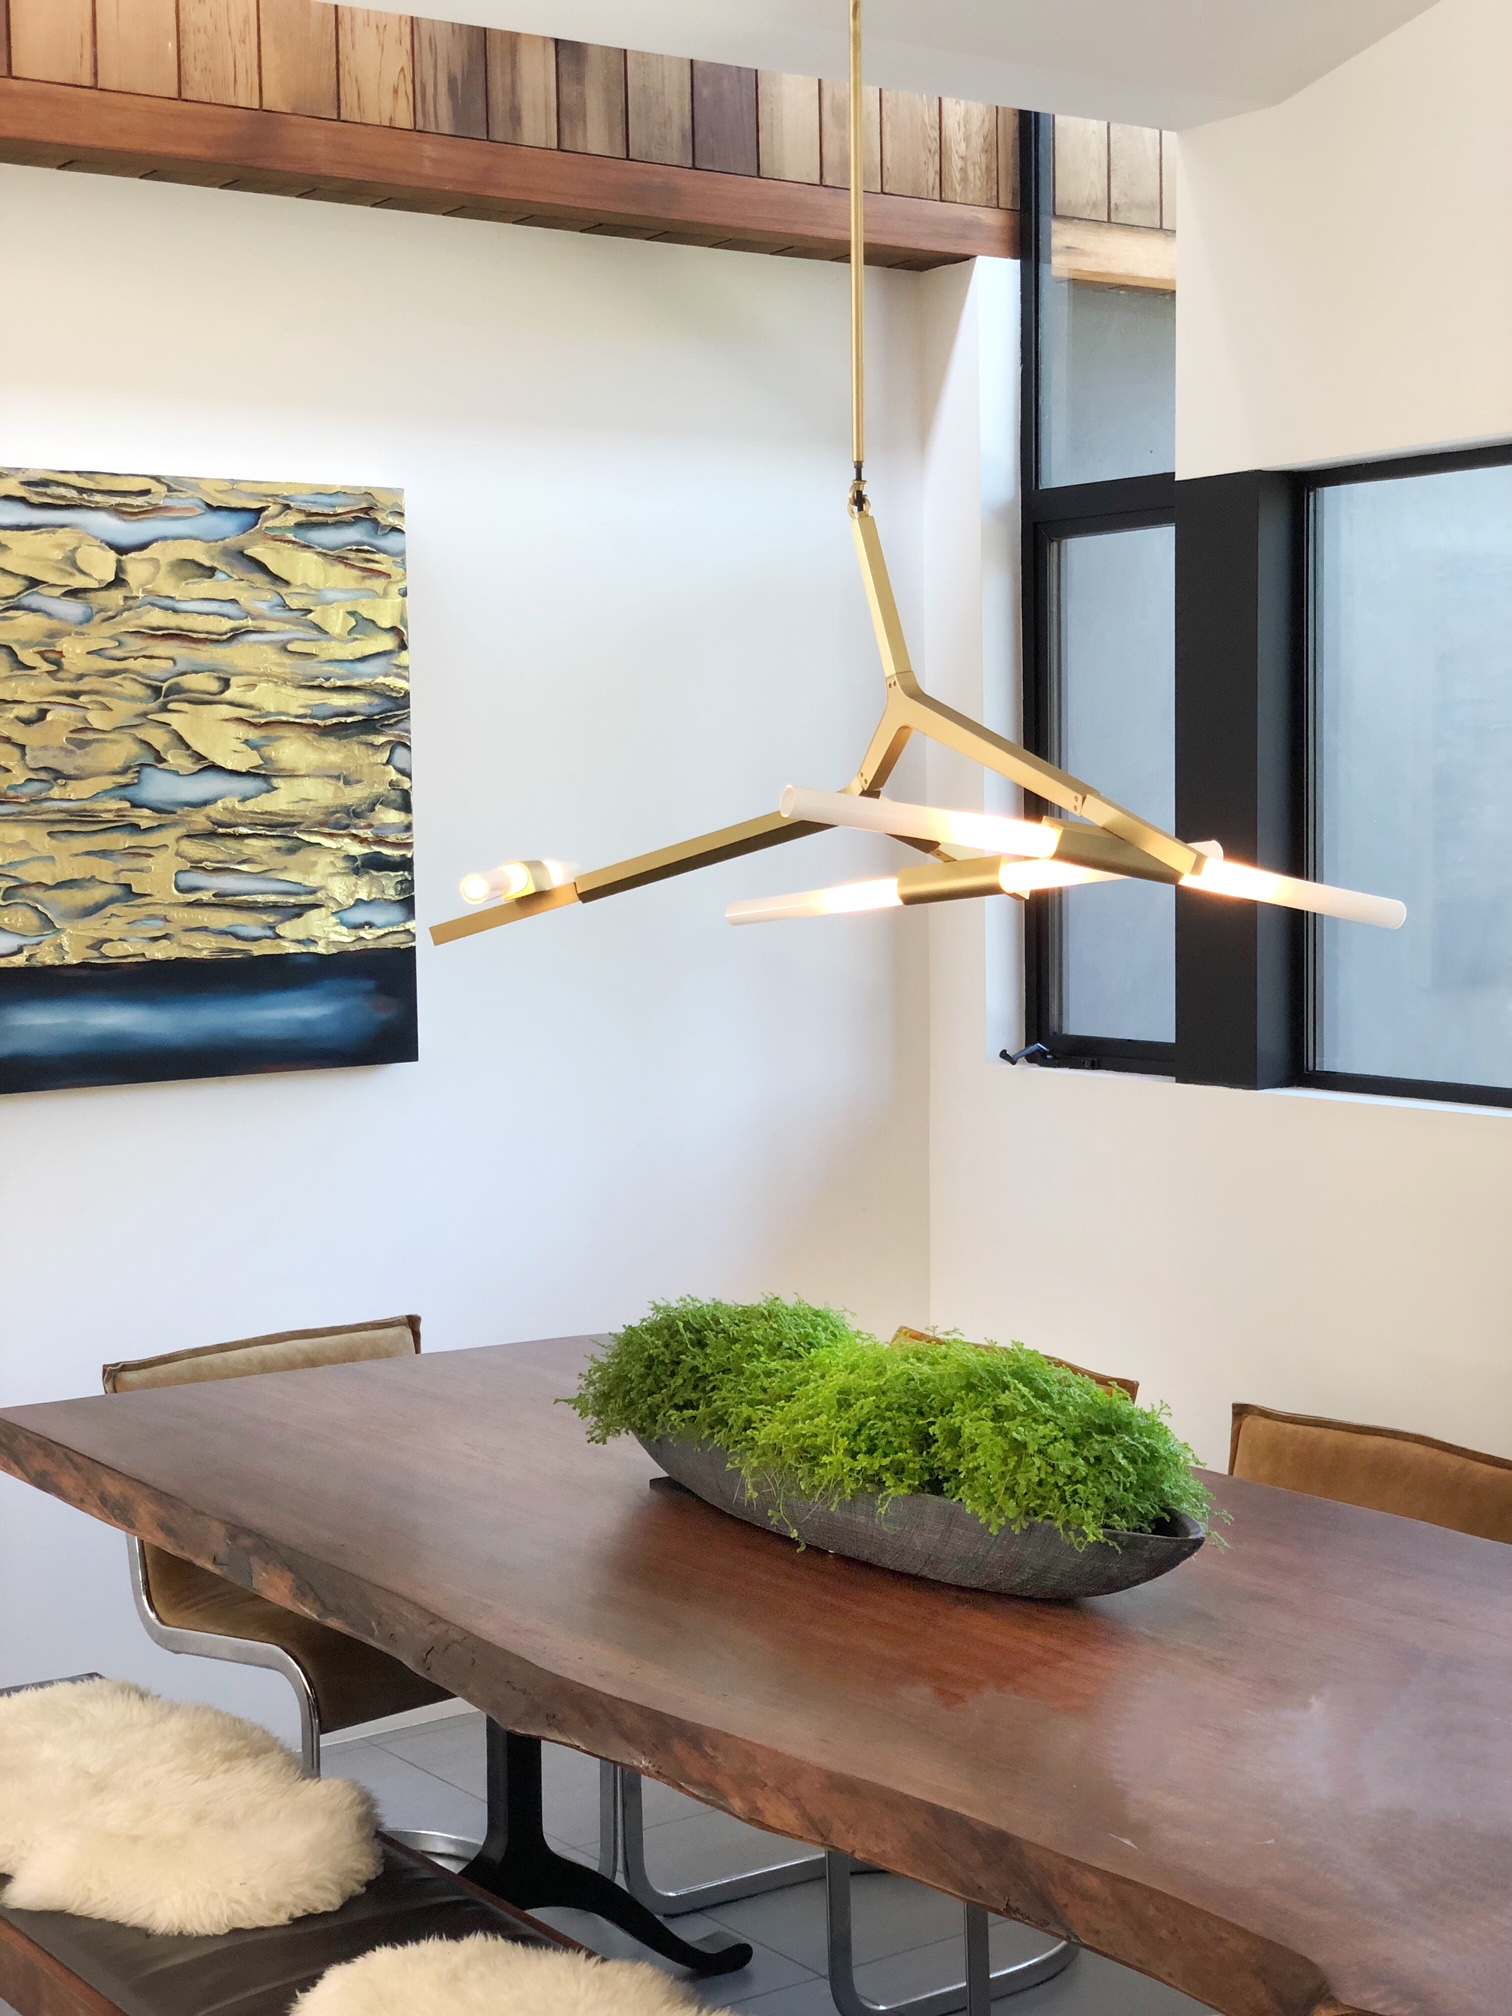 Dwell On Design Home Tour Los Angeles 2018 Interiors